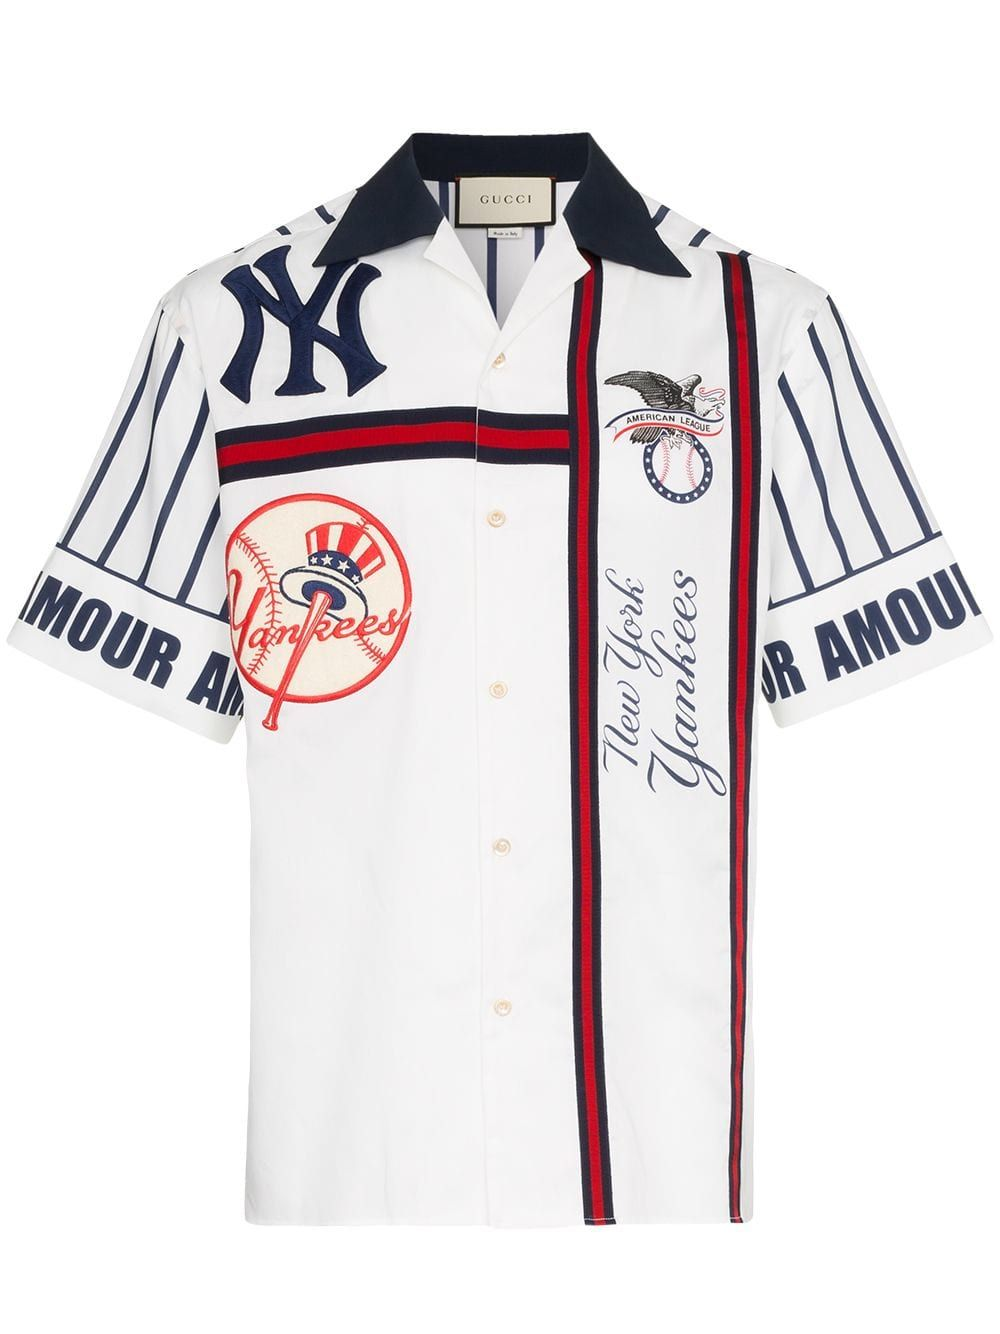 Gucci Ny Yankees Embroidered Cotton Bowling Shirt In Blue Modesens Bowling Shirts New York Yankees Shirt Bowling Outfit